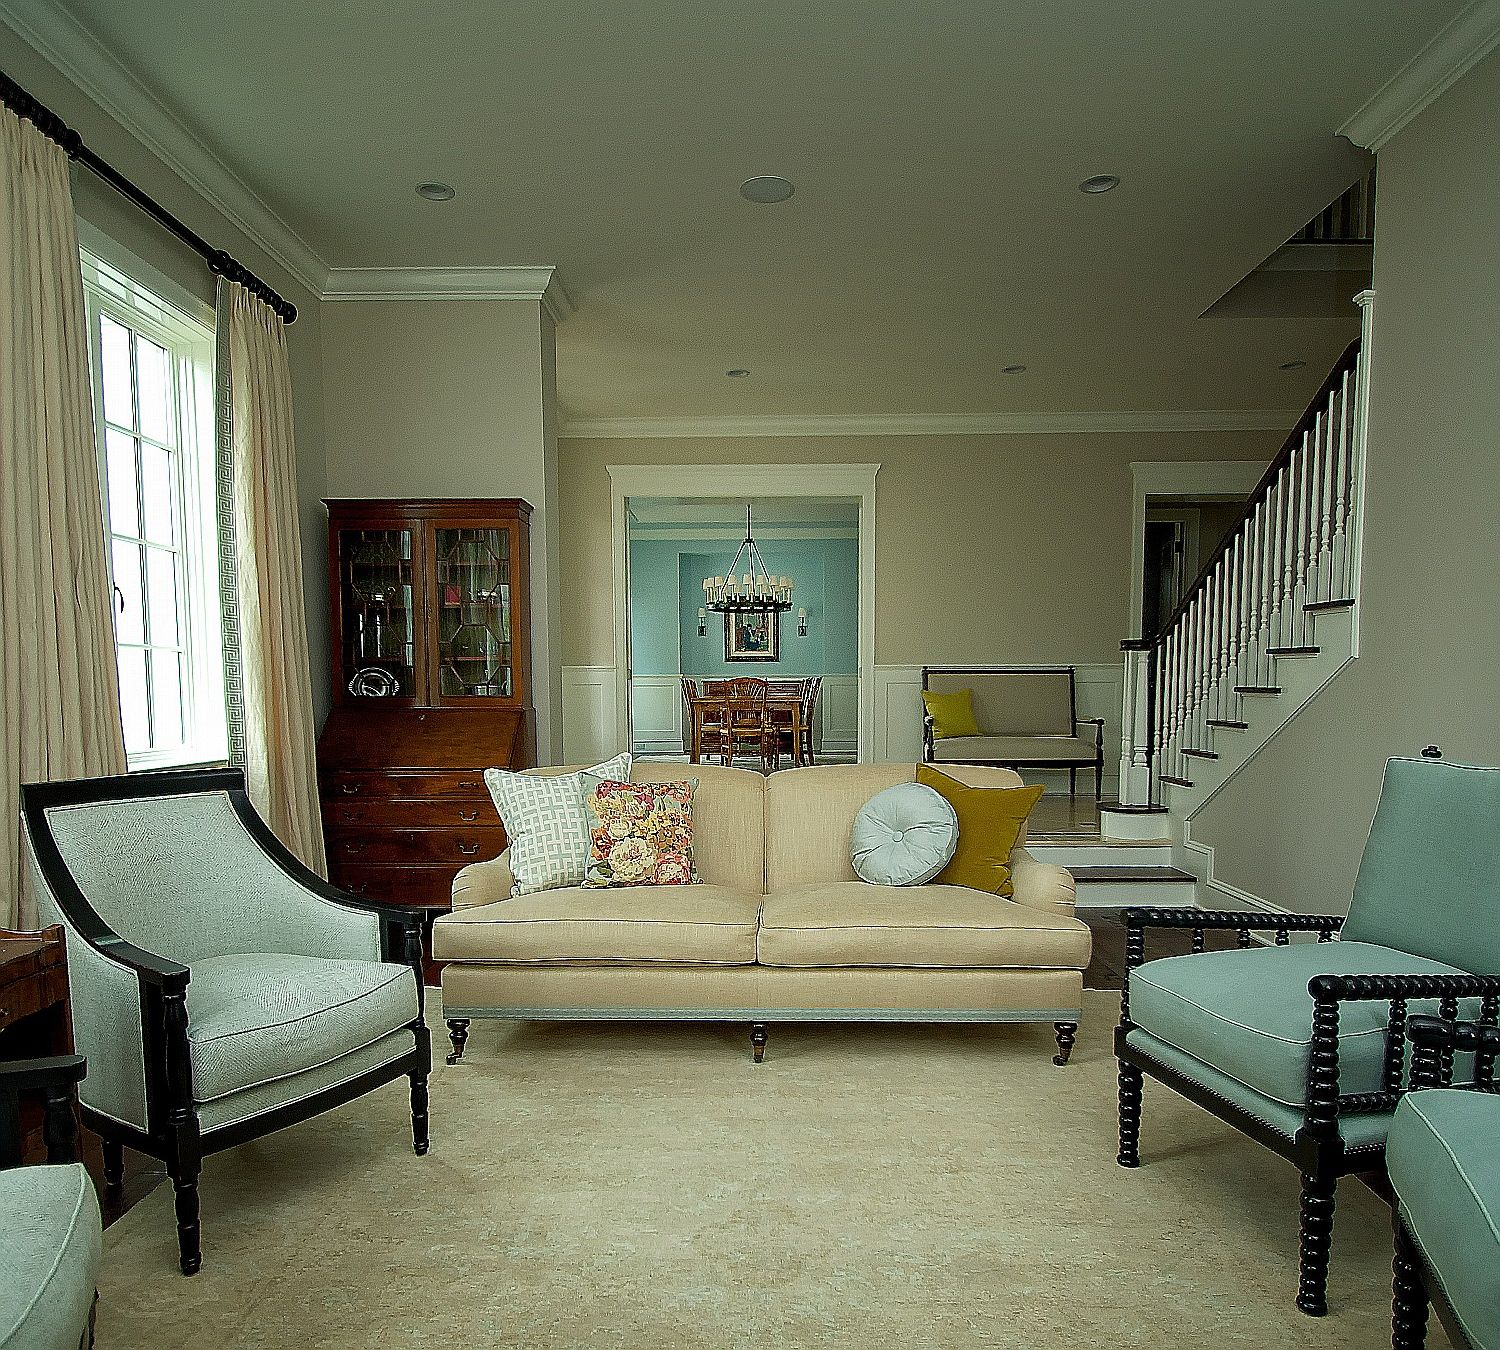 cape cod living rooms traditional east coast cape cod living room view to dining room - Cape Cod Living Room